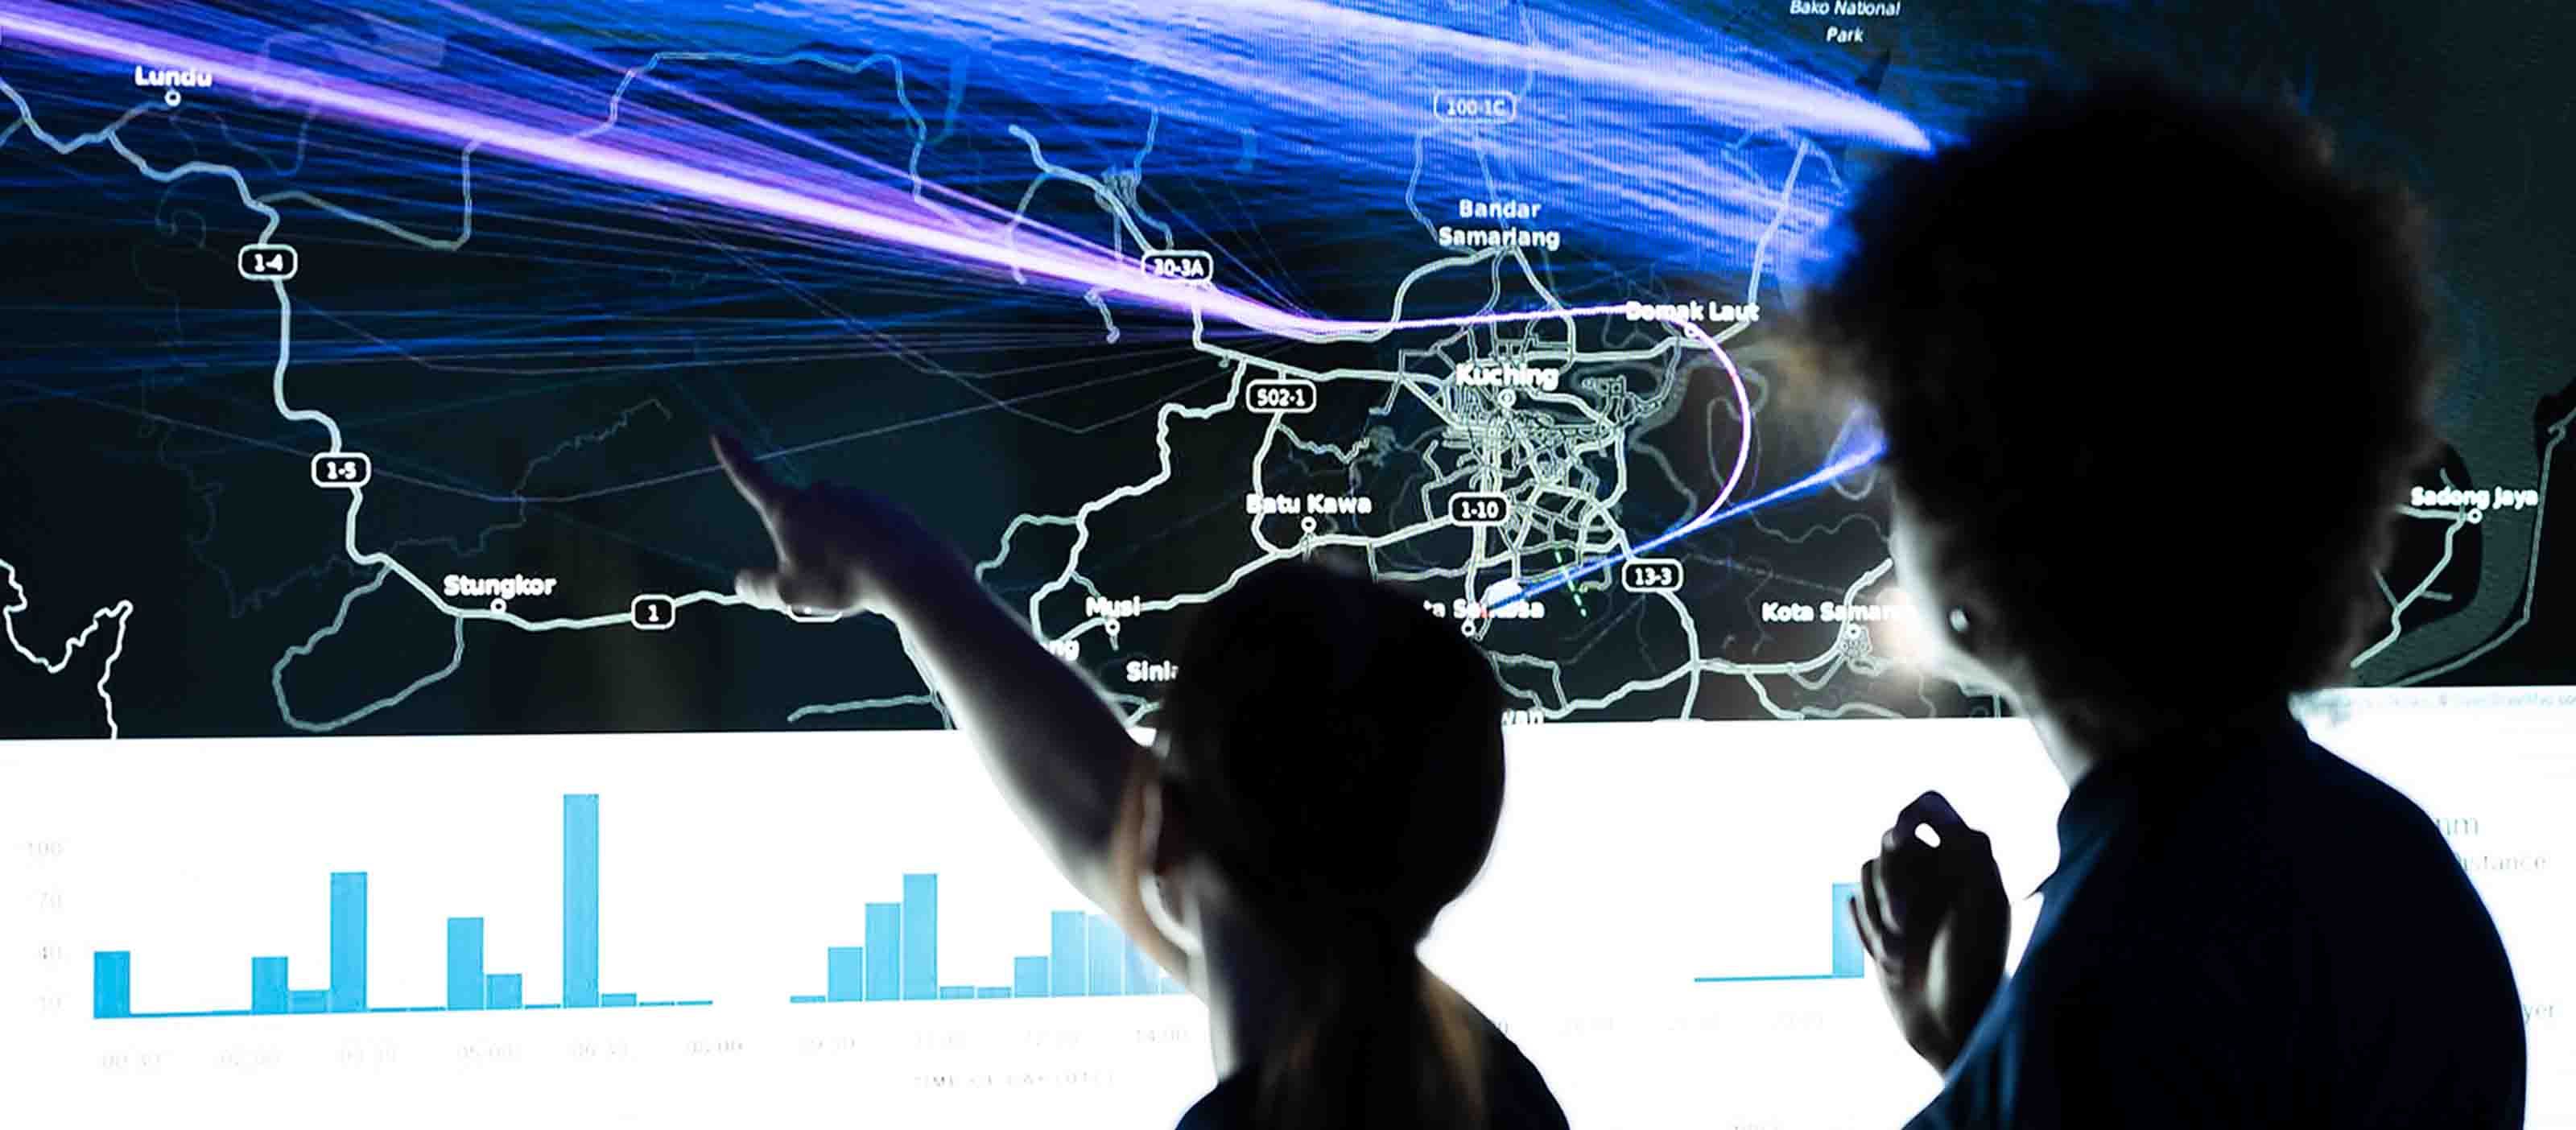 Airspace Insight uses predictive analytics to reduce inefficient airtime and costs | GE Digital